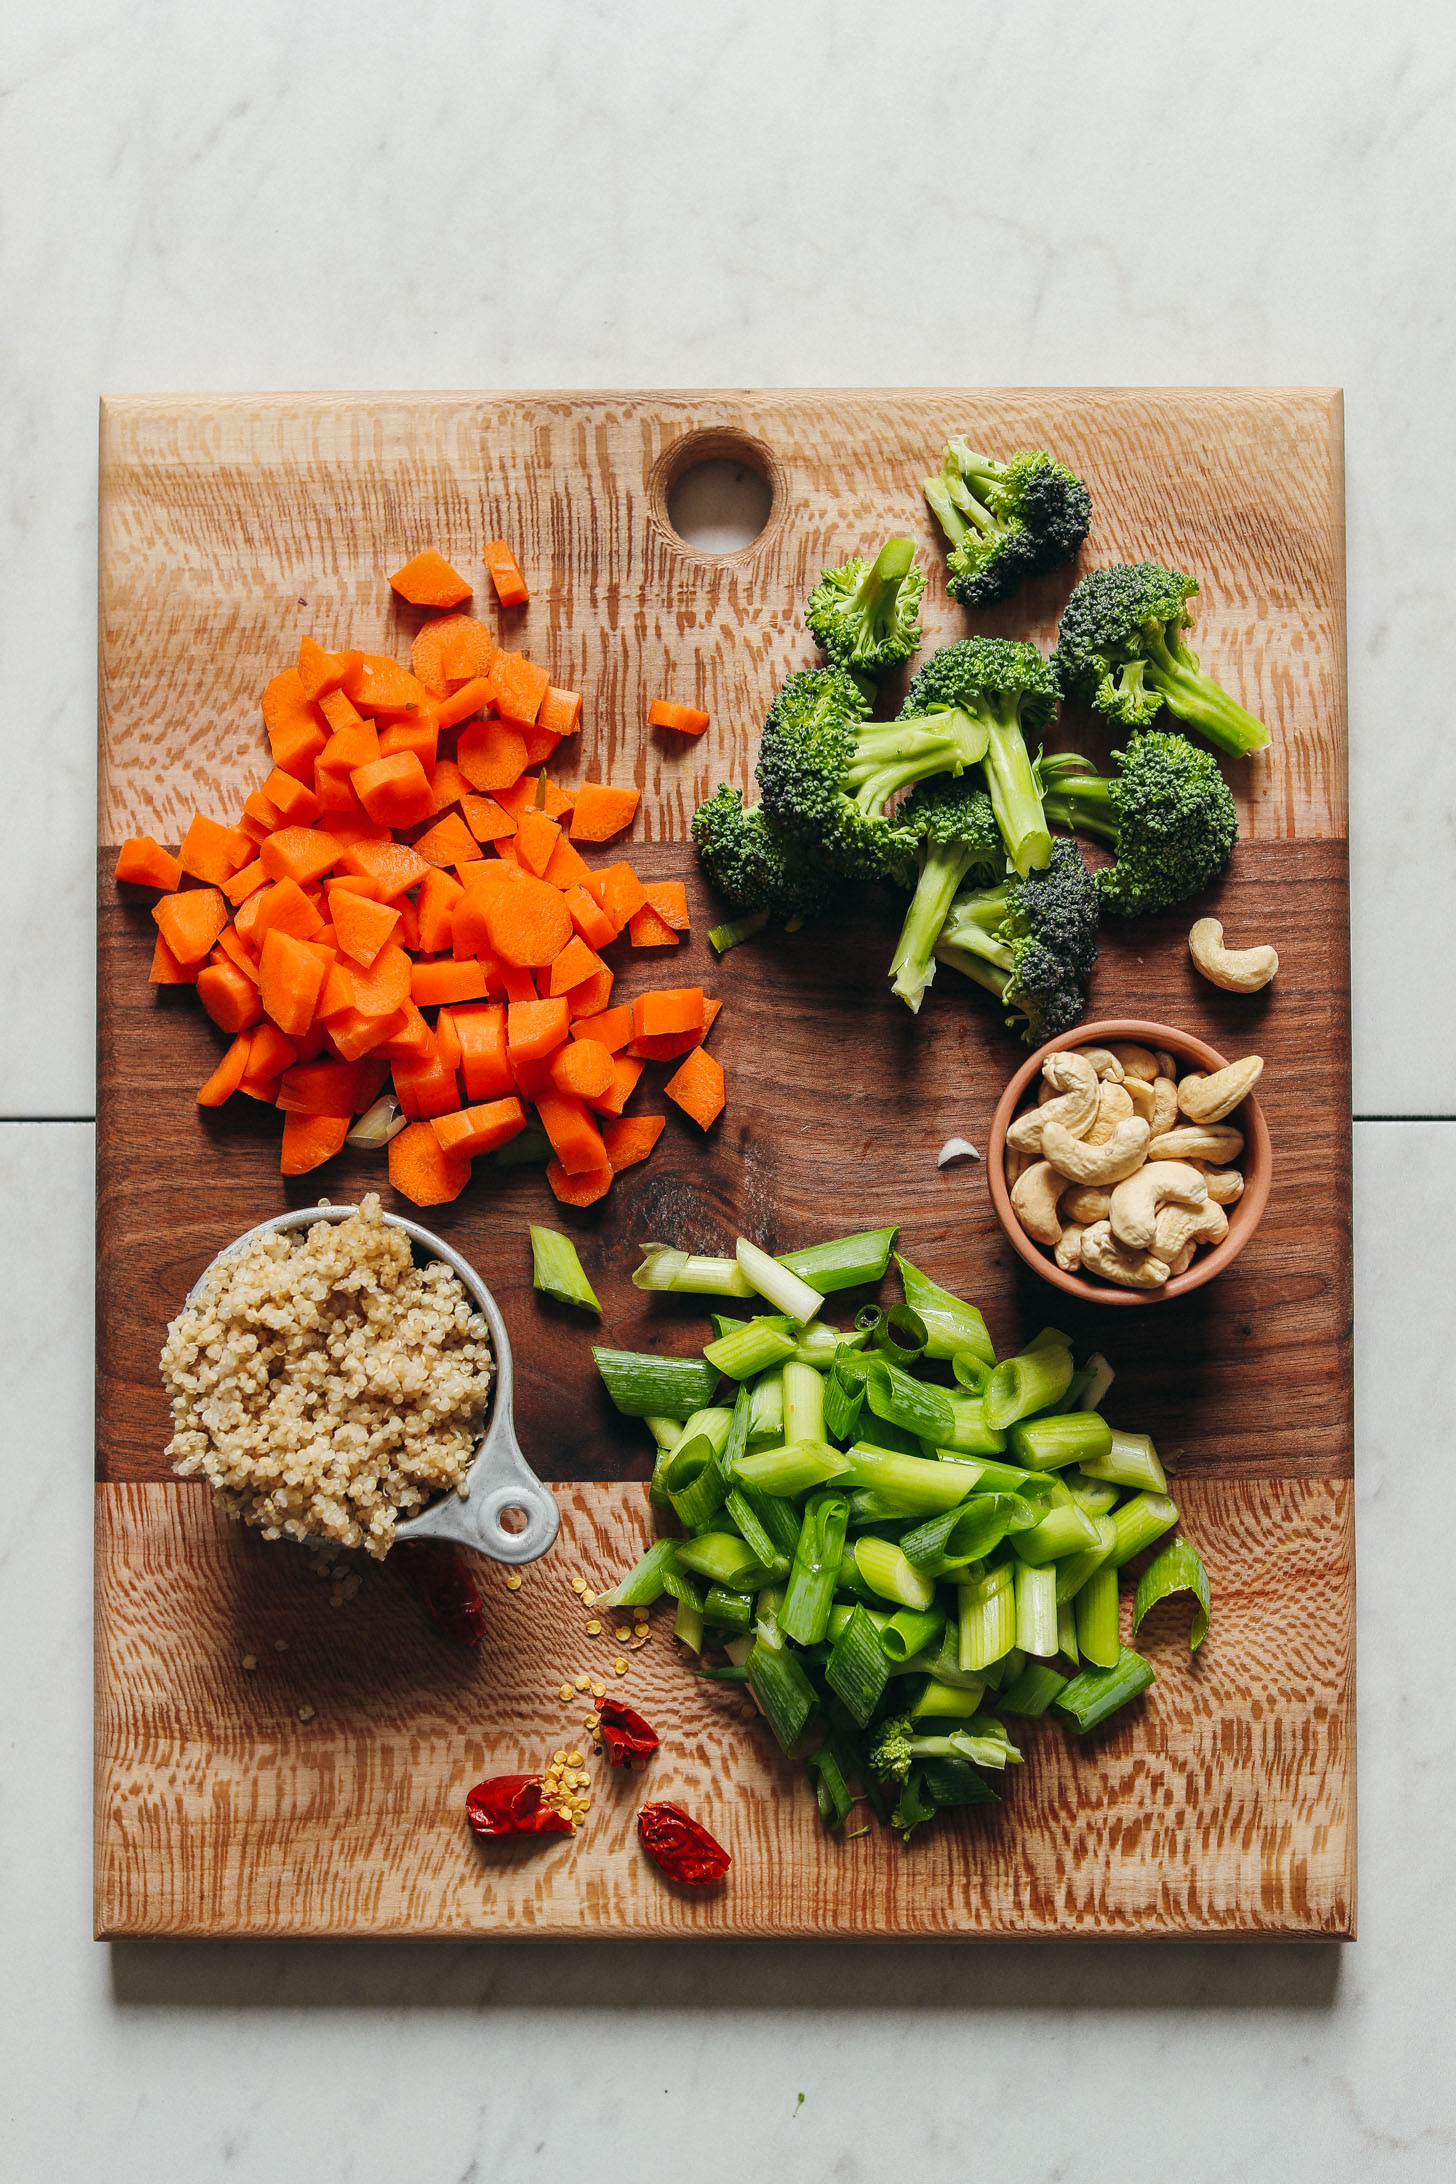 Ingredients for vegan quinoa fried rice on a cutting board